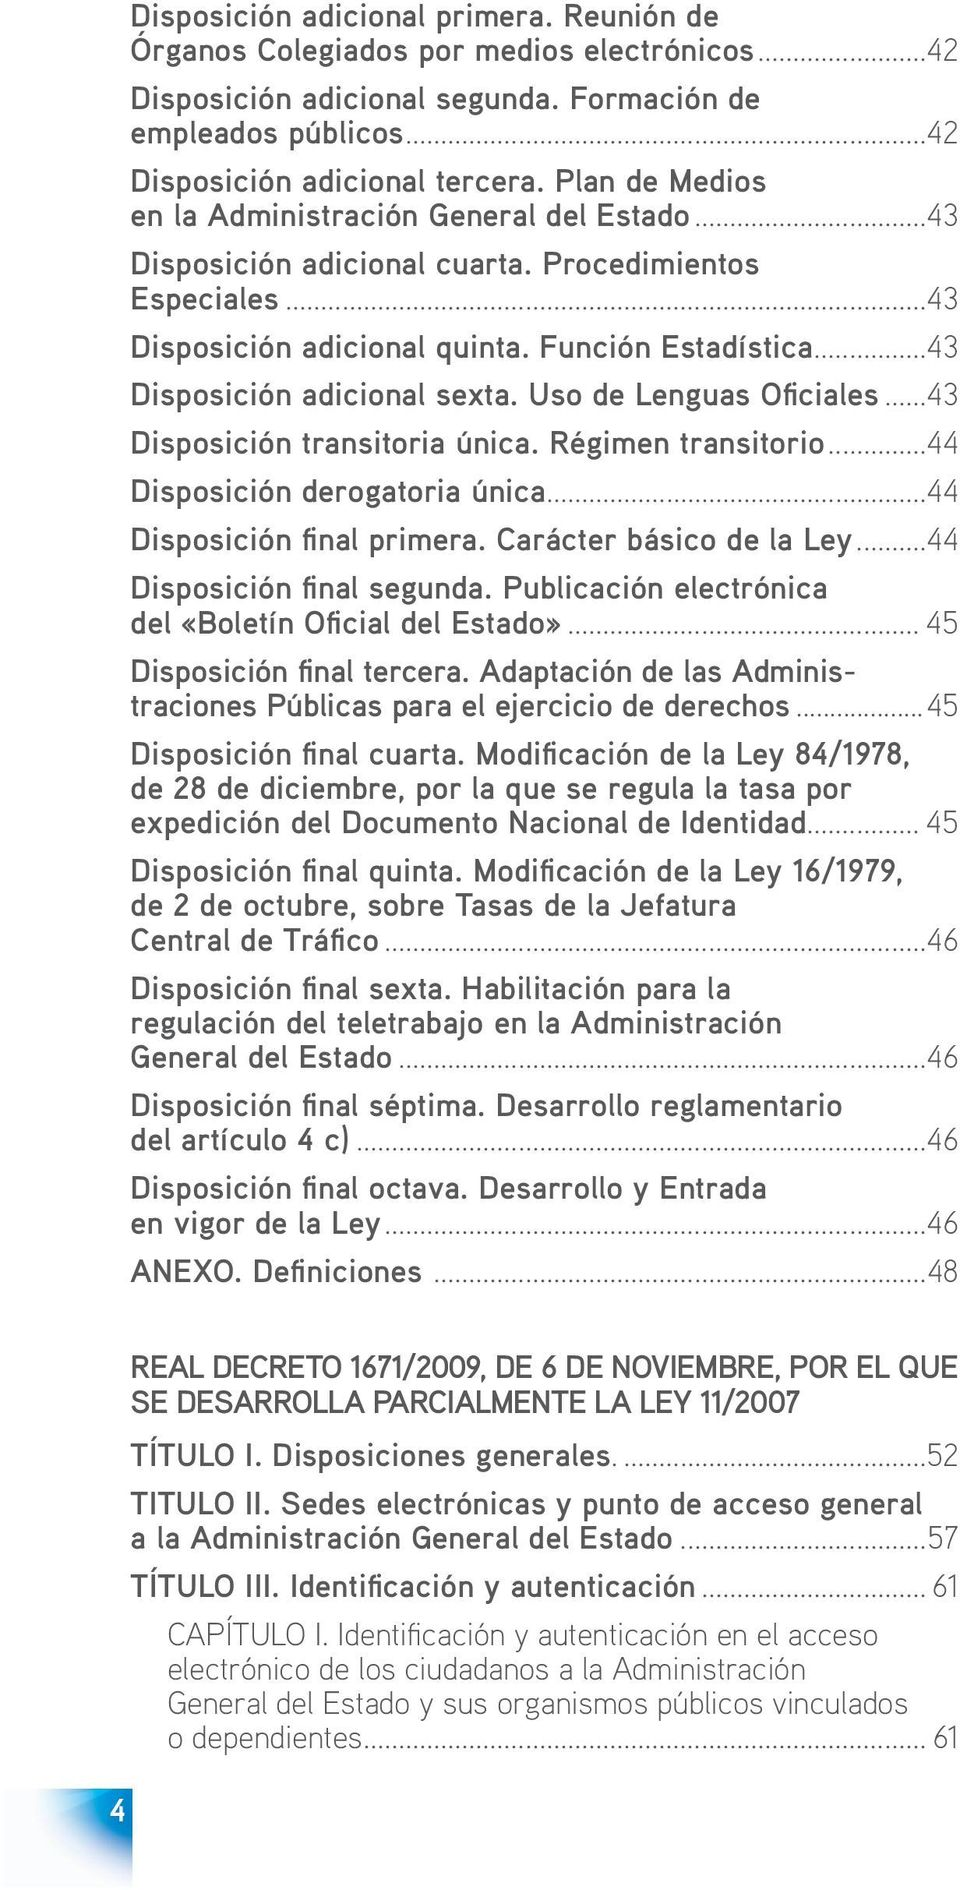 ..43 Disposición adicional sexta. Uso de Lenguas Ofi ciales...43 Disposición transitoria única. Régimen transitorio...44 Disposición derogatoria única...44 Disposición final primera.